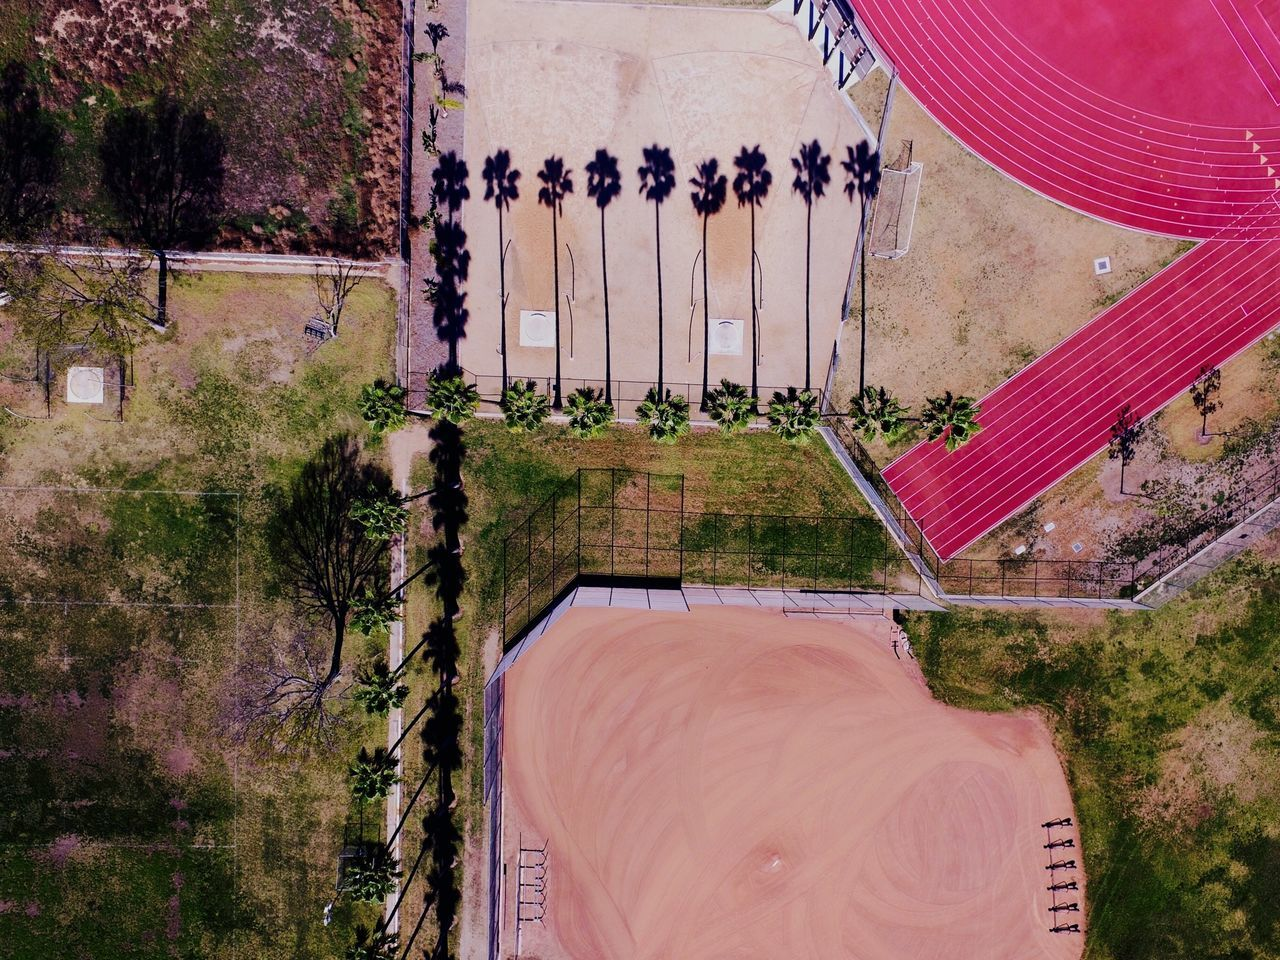 Aerial view of sports ground